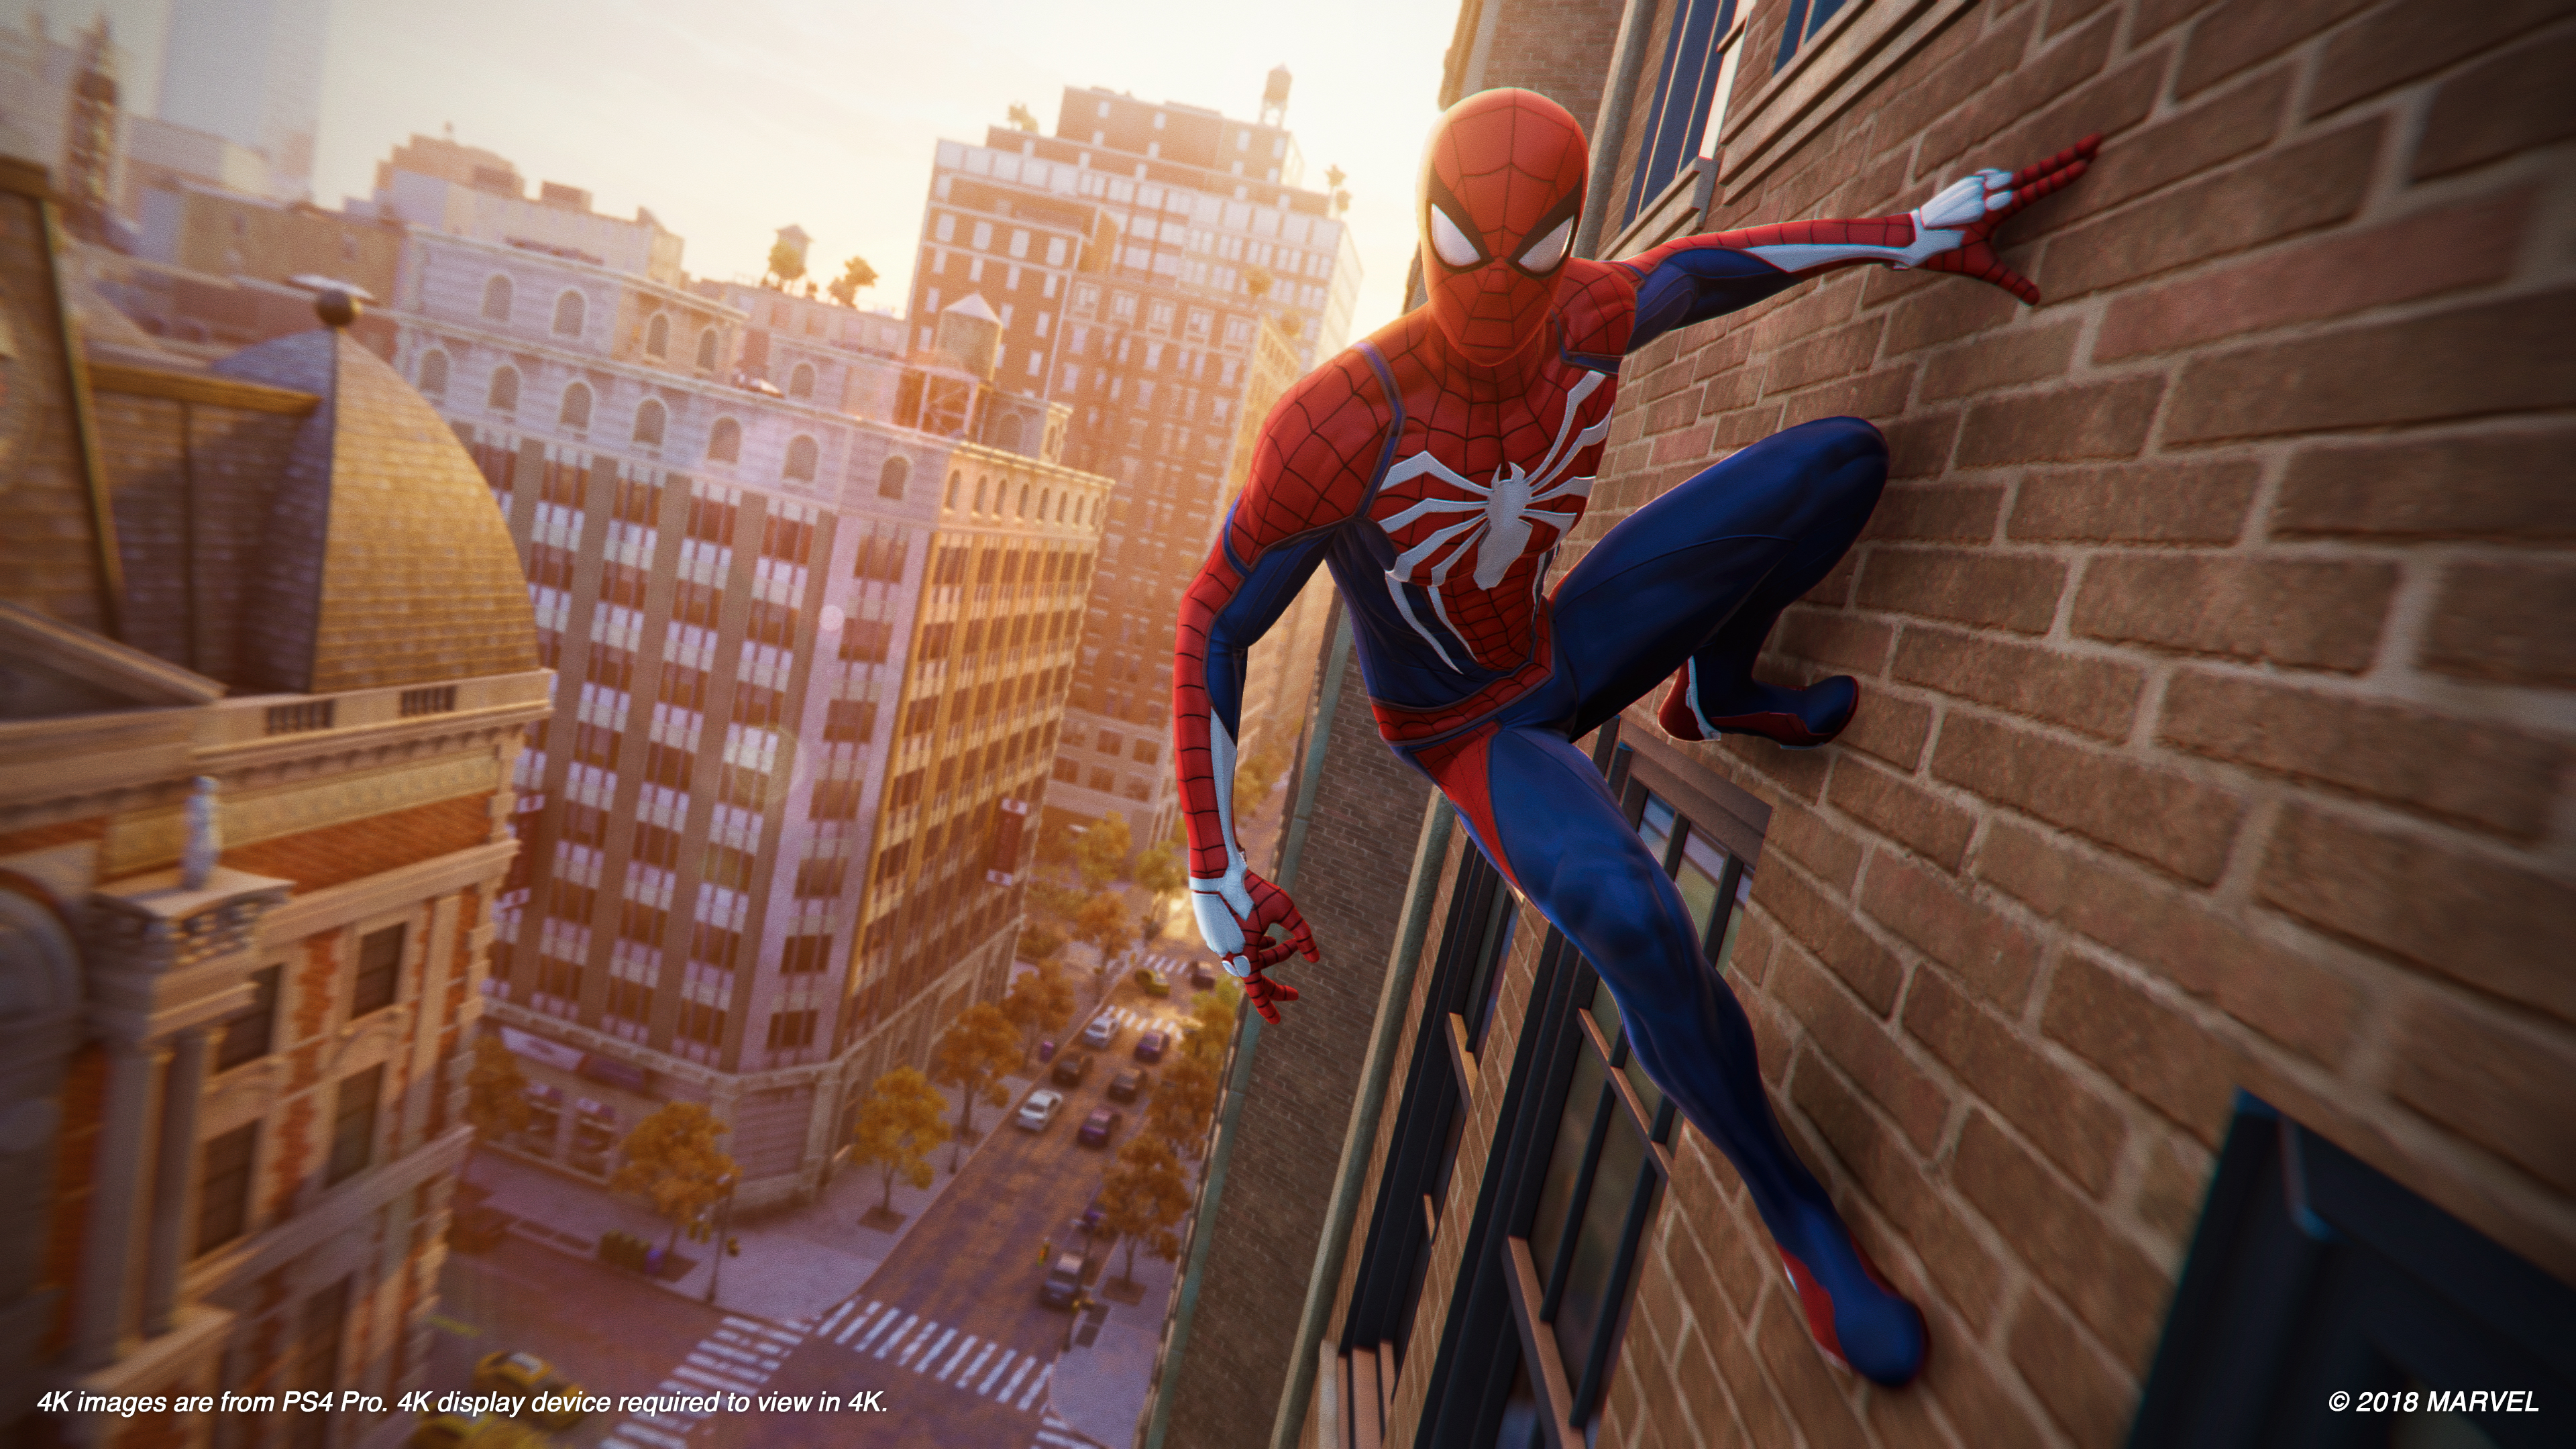 180802_28827_Spider-Man_PS4_Preview_Wall.jpg